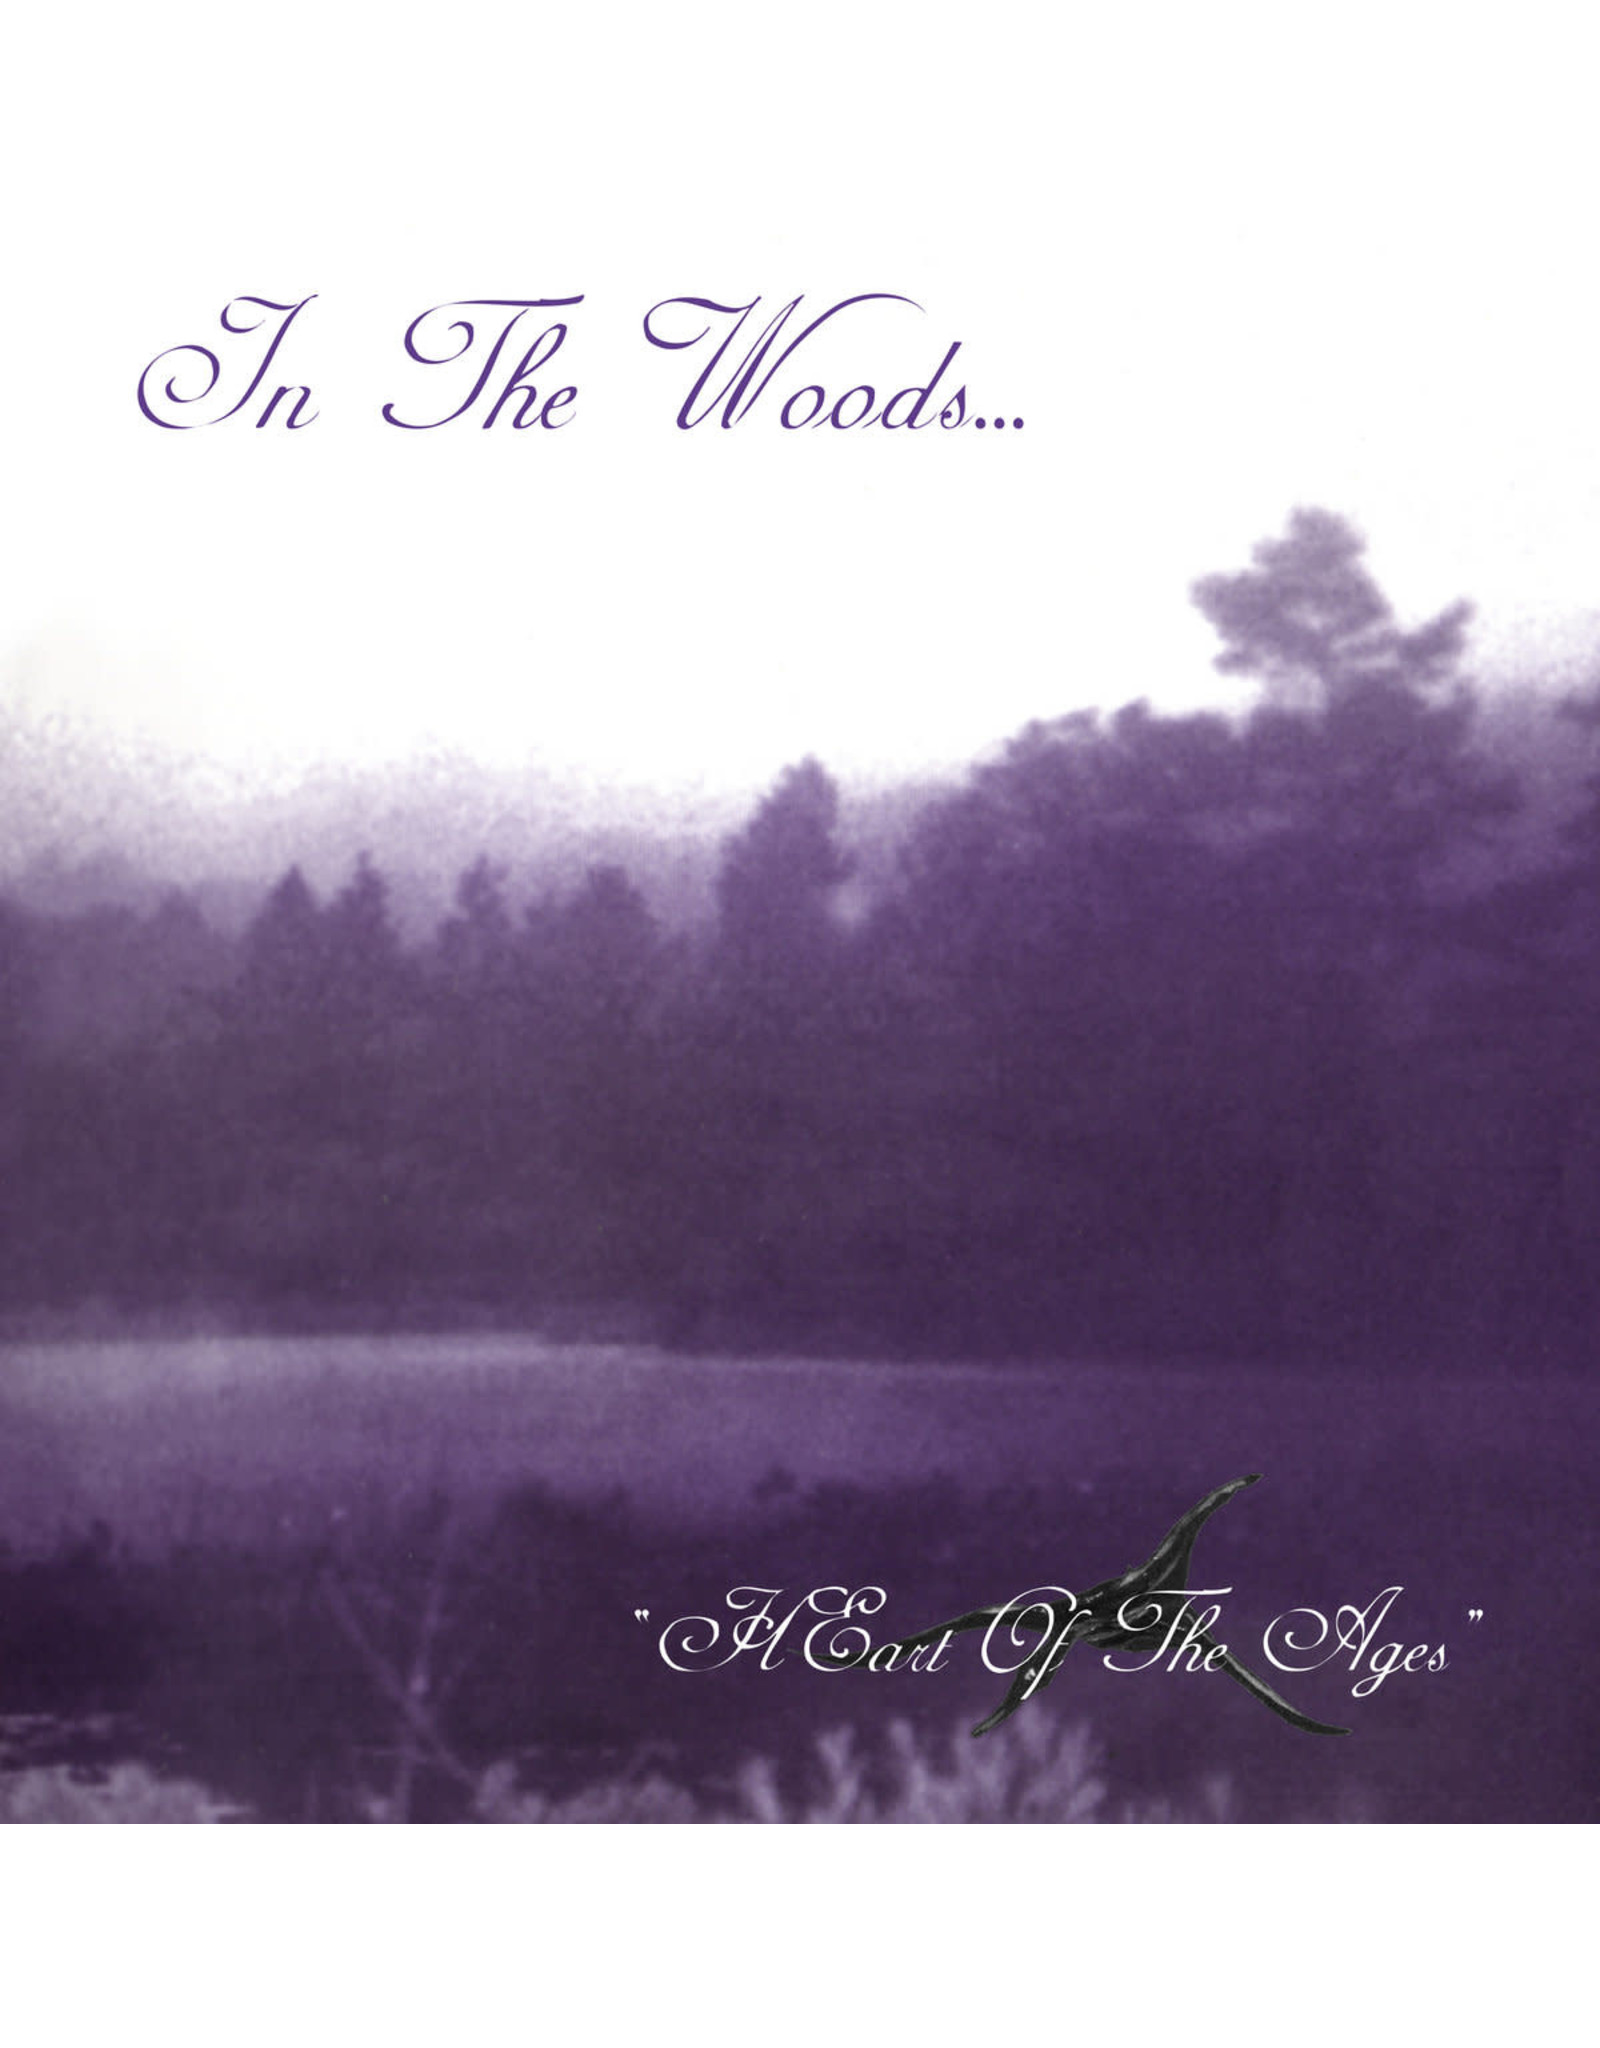 New Vinyl In The Woods - Heart Of The Ages (Colored) 2LP